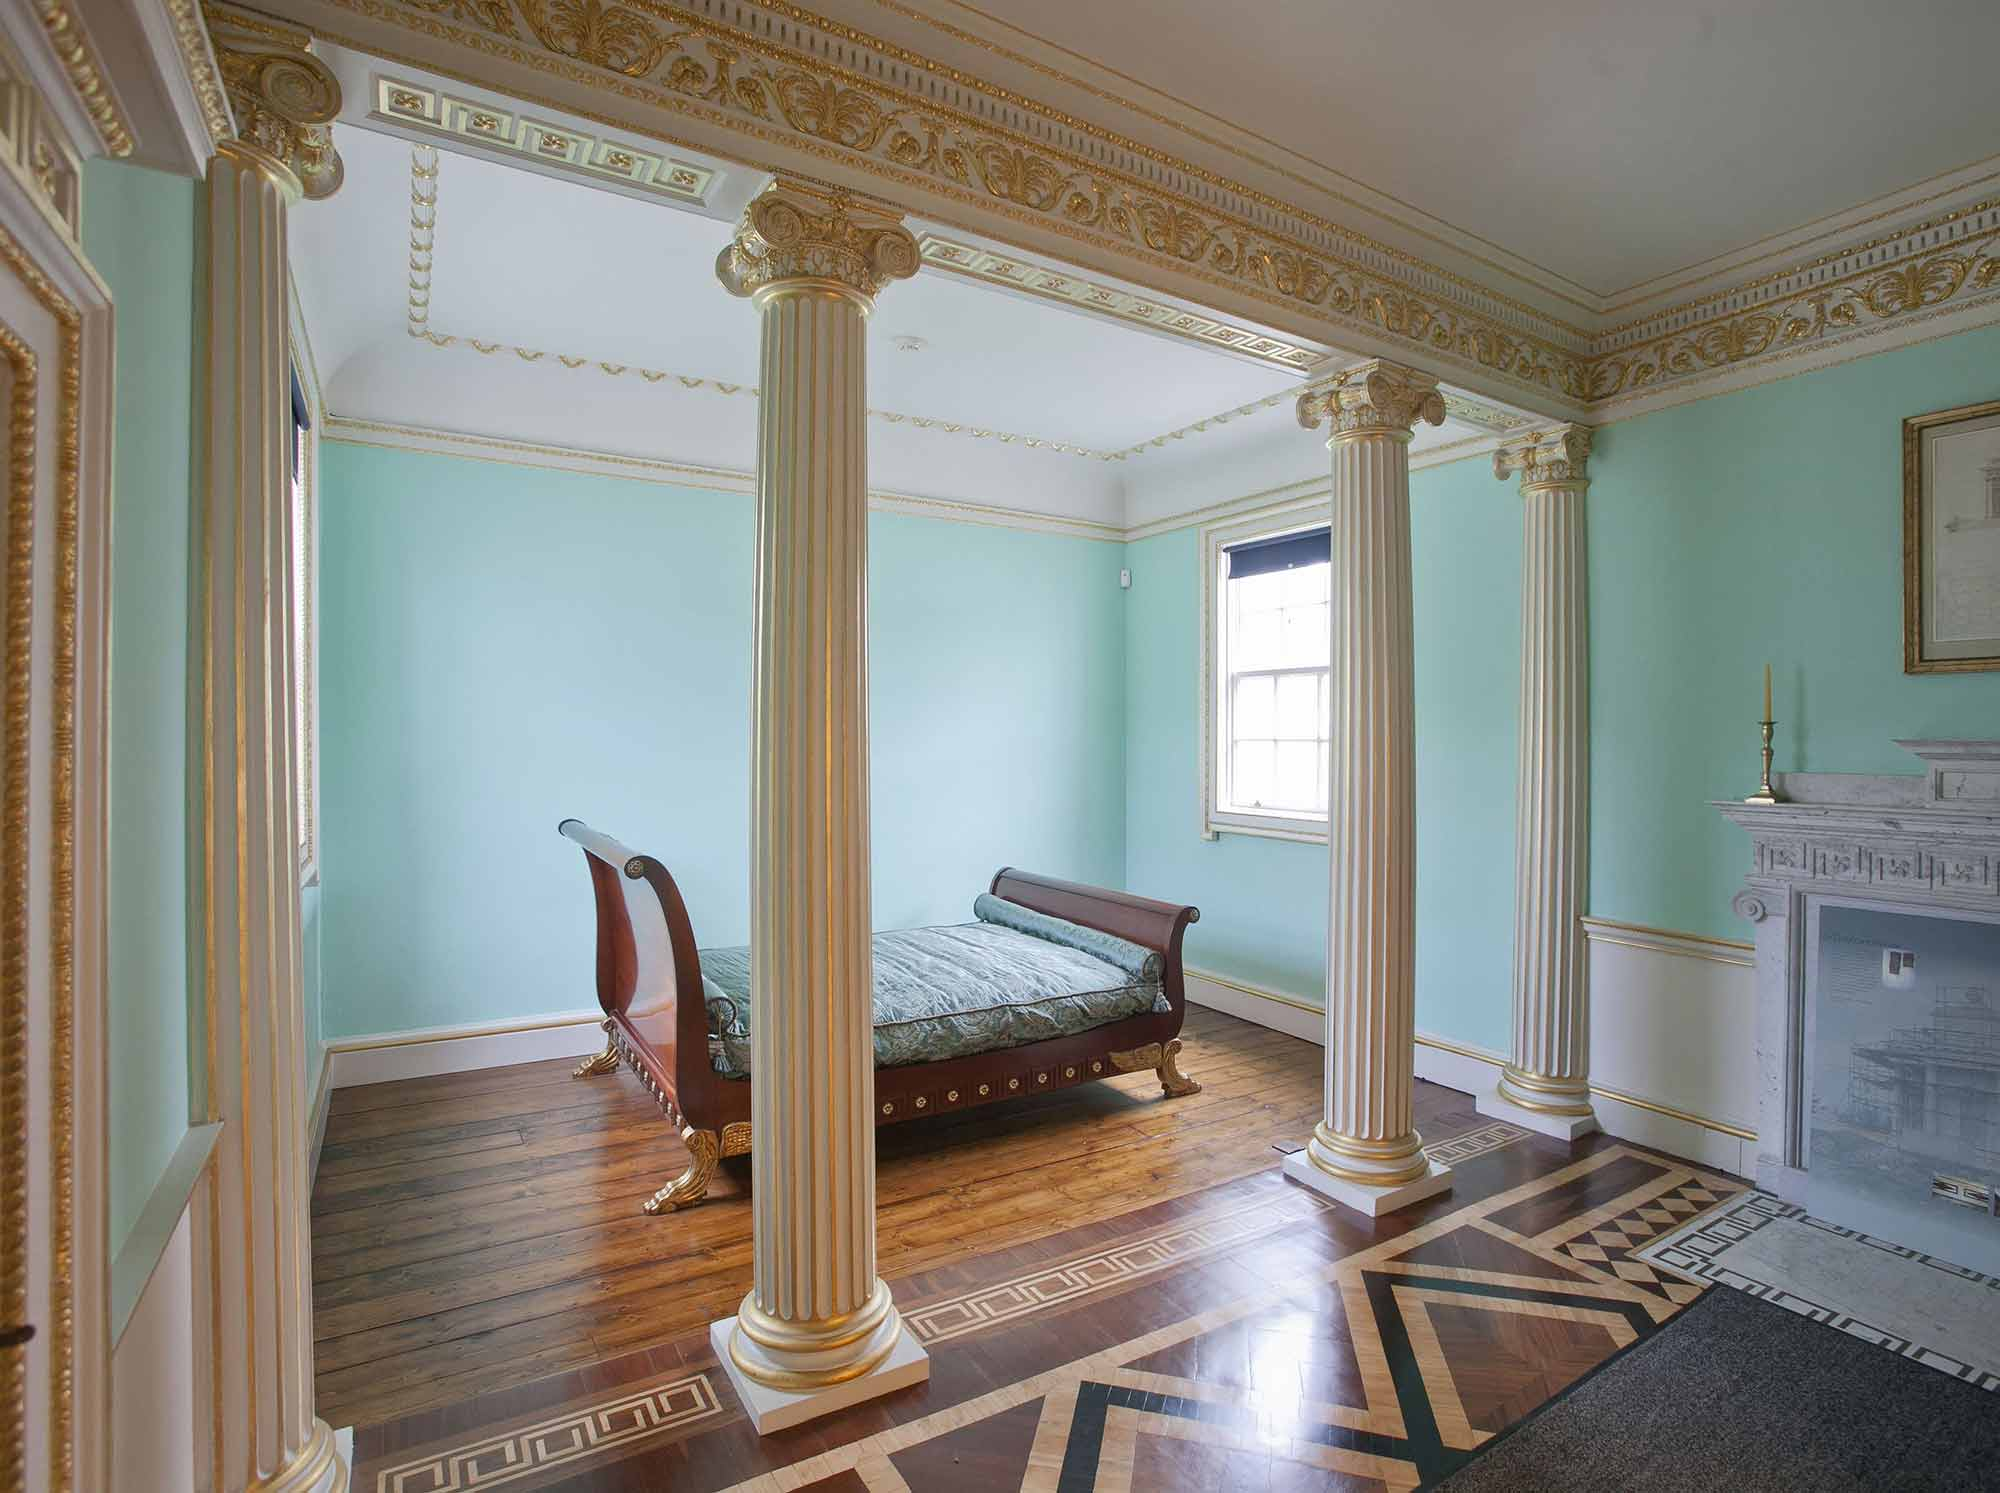 State bedroom